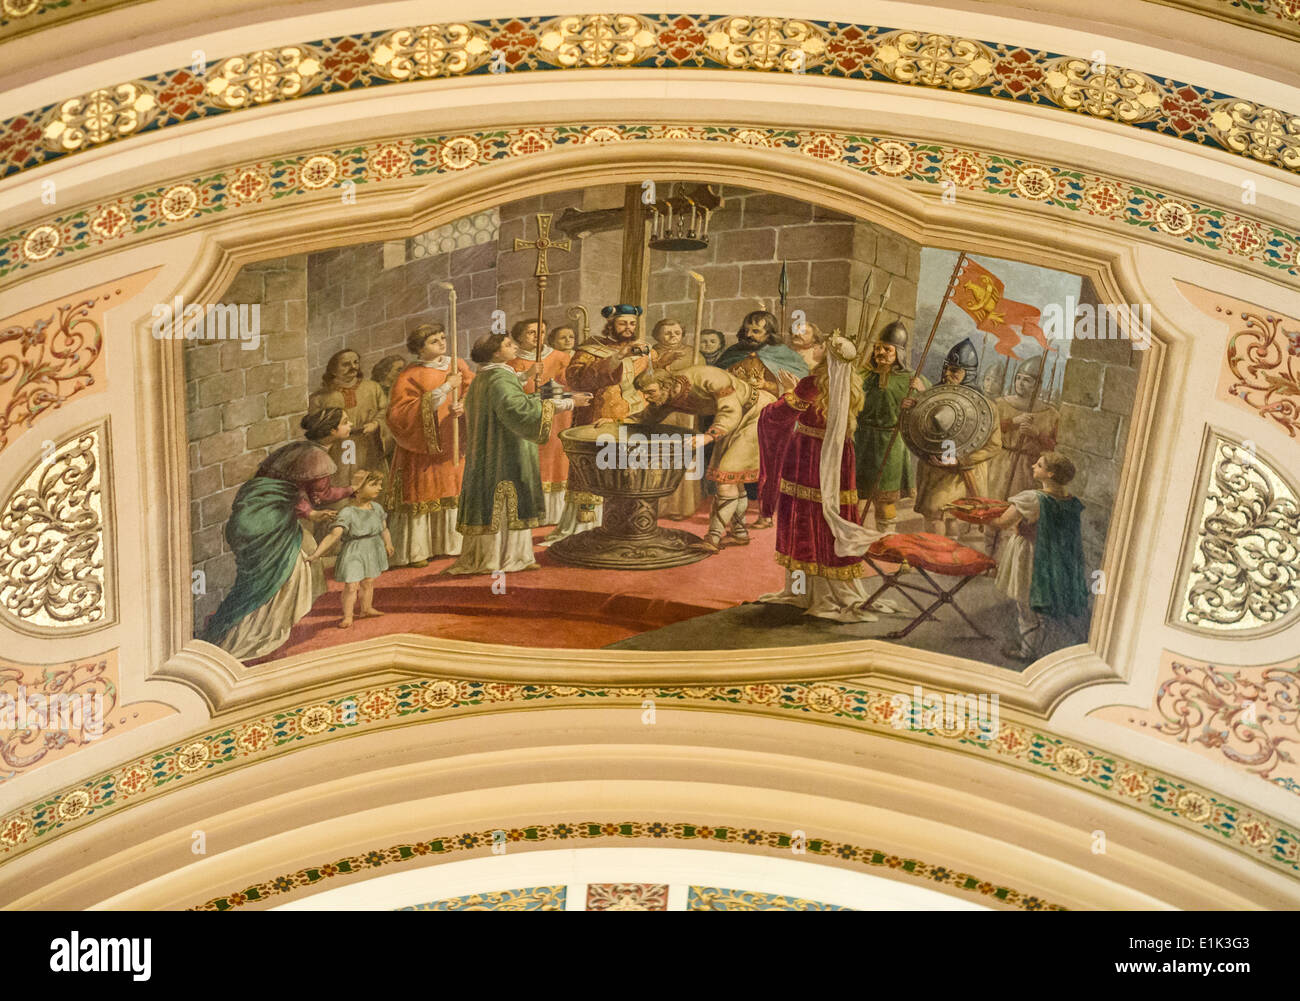 Mural of the Baptism of Mieszko I. On the ceiling a large painting of the baptism of the first ruler of Poland Stock Photo